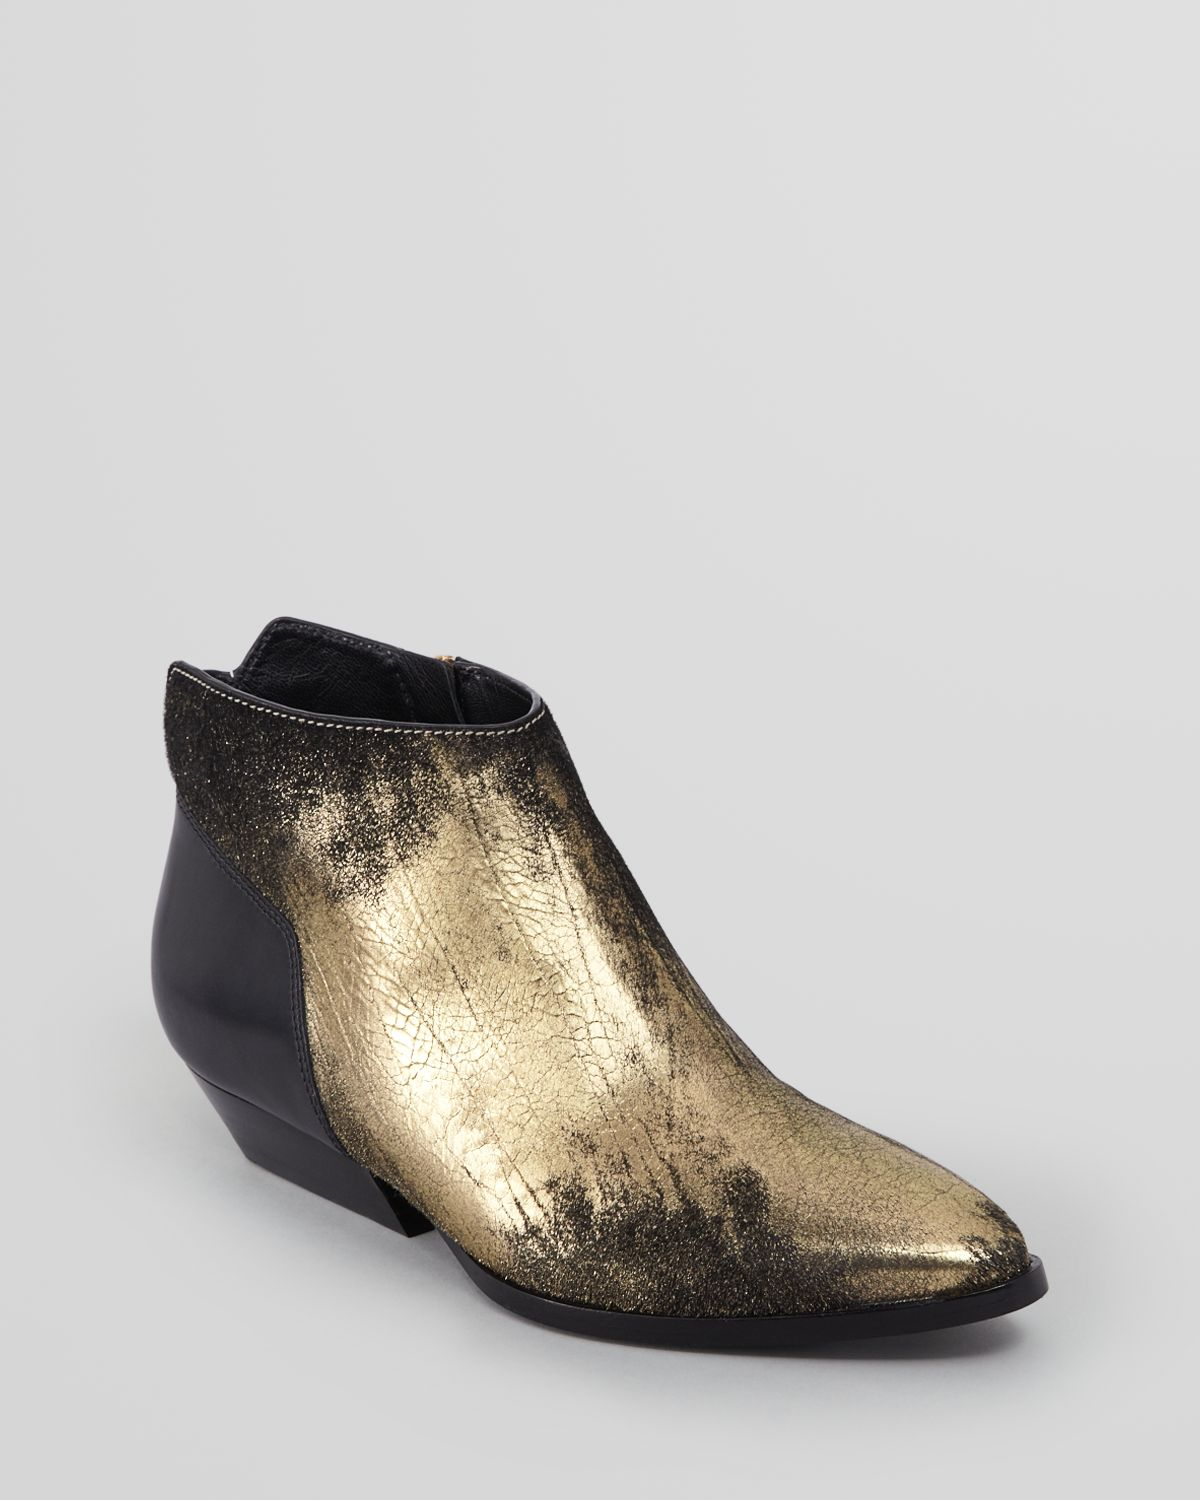 Sigerson Morrison Pointed Toe Booties - Prime Flat | Bloomingdale's